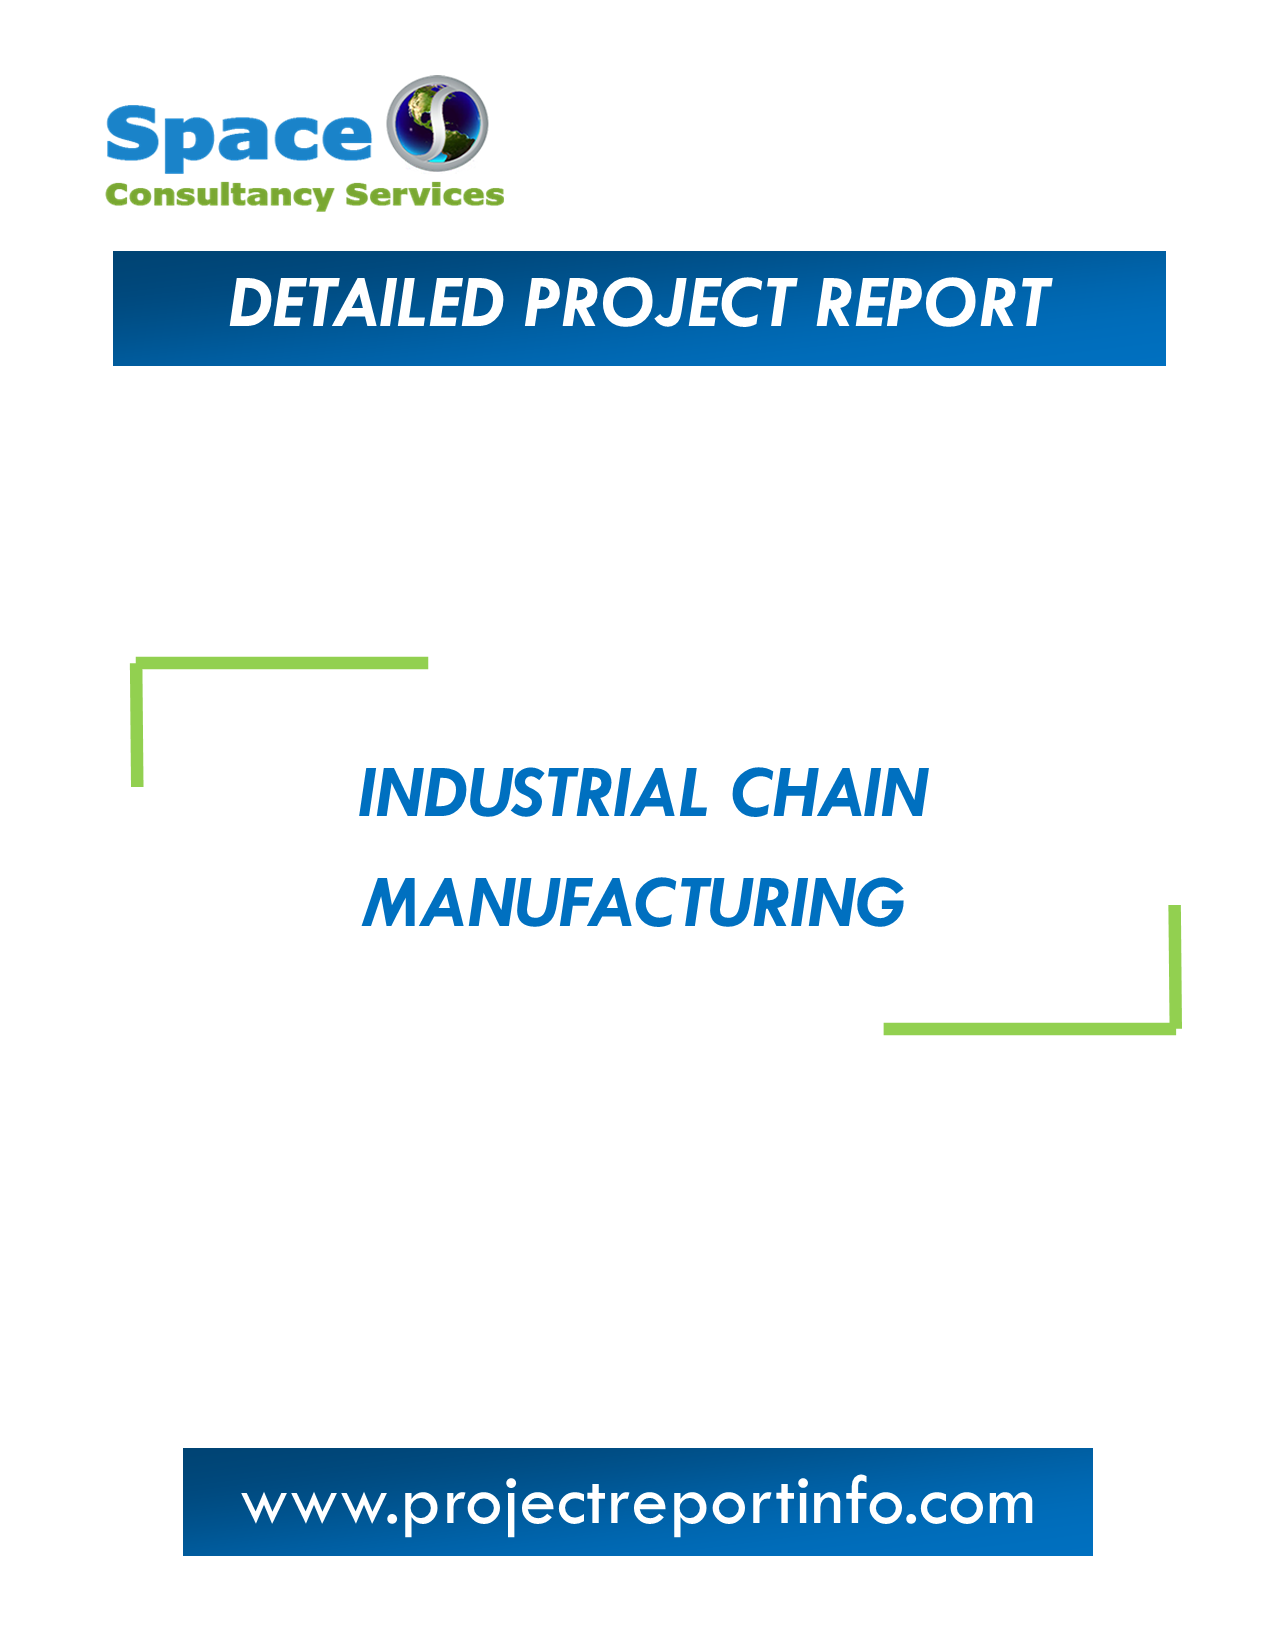 Industrial Chain Manufacturing Project Report